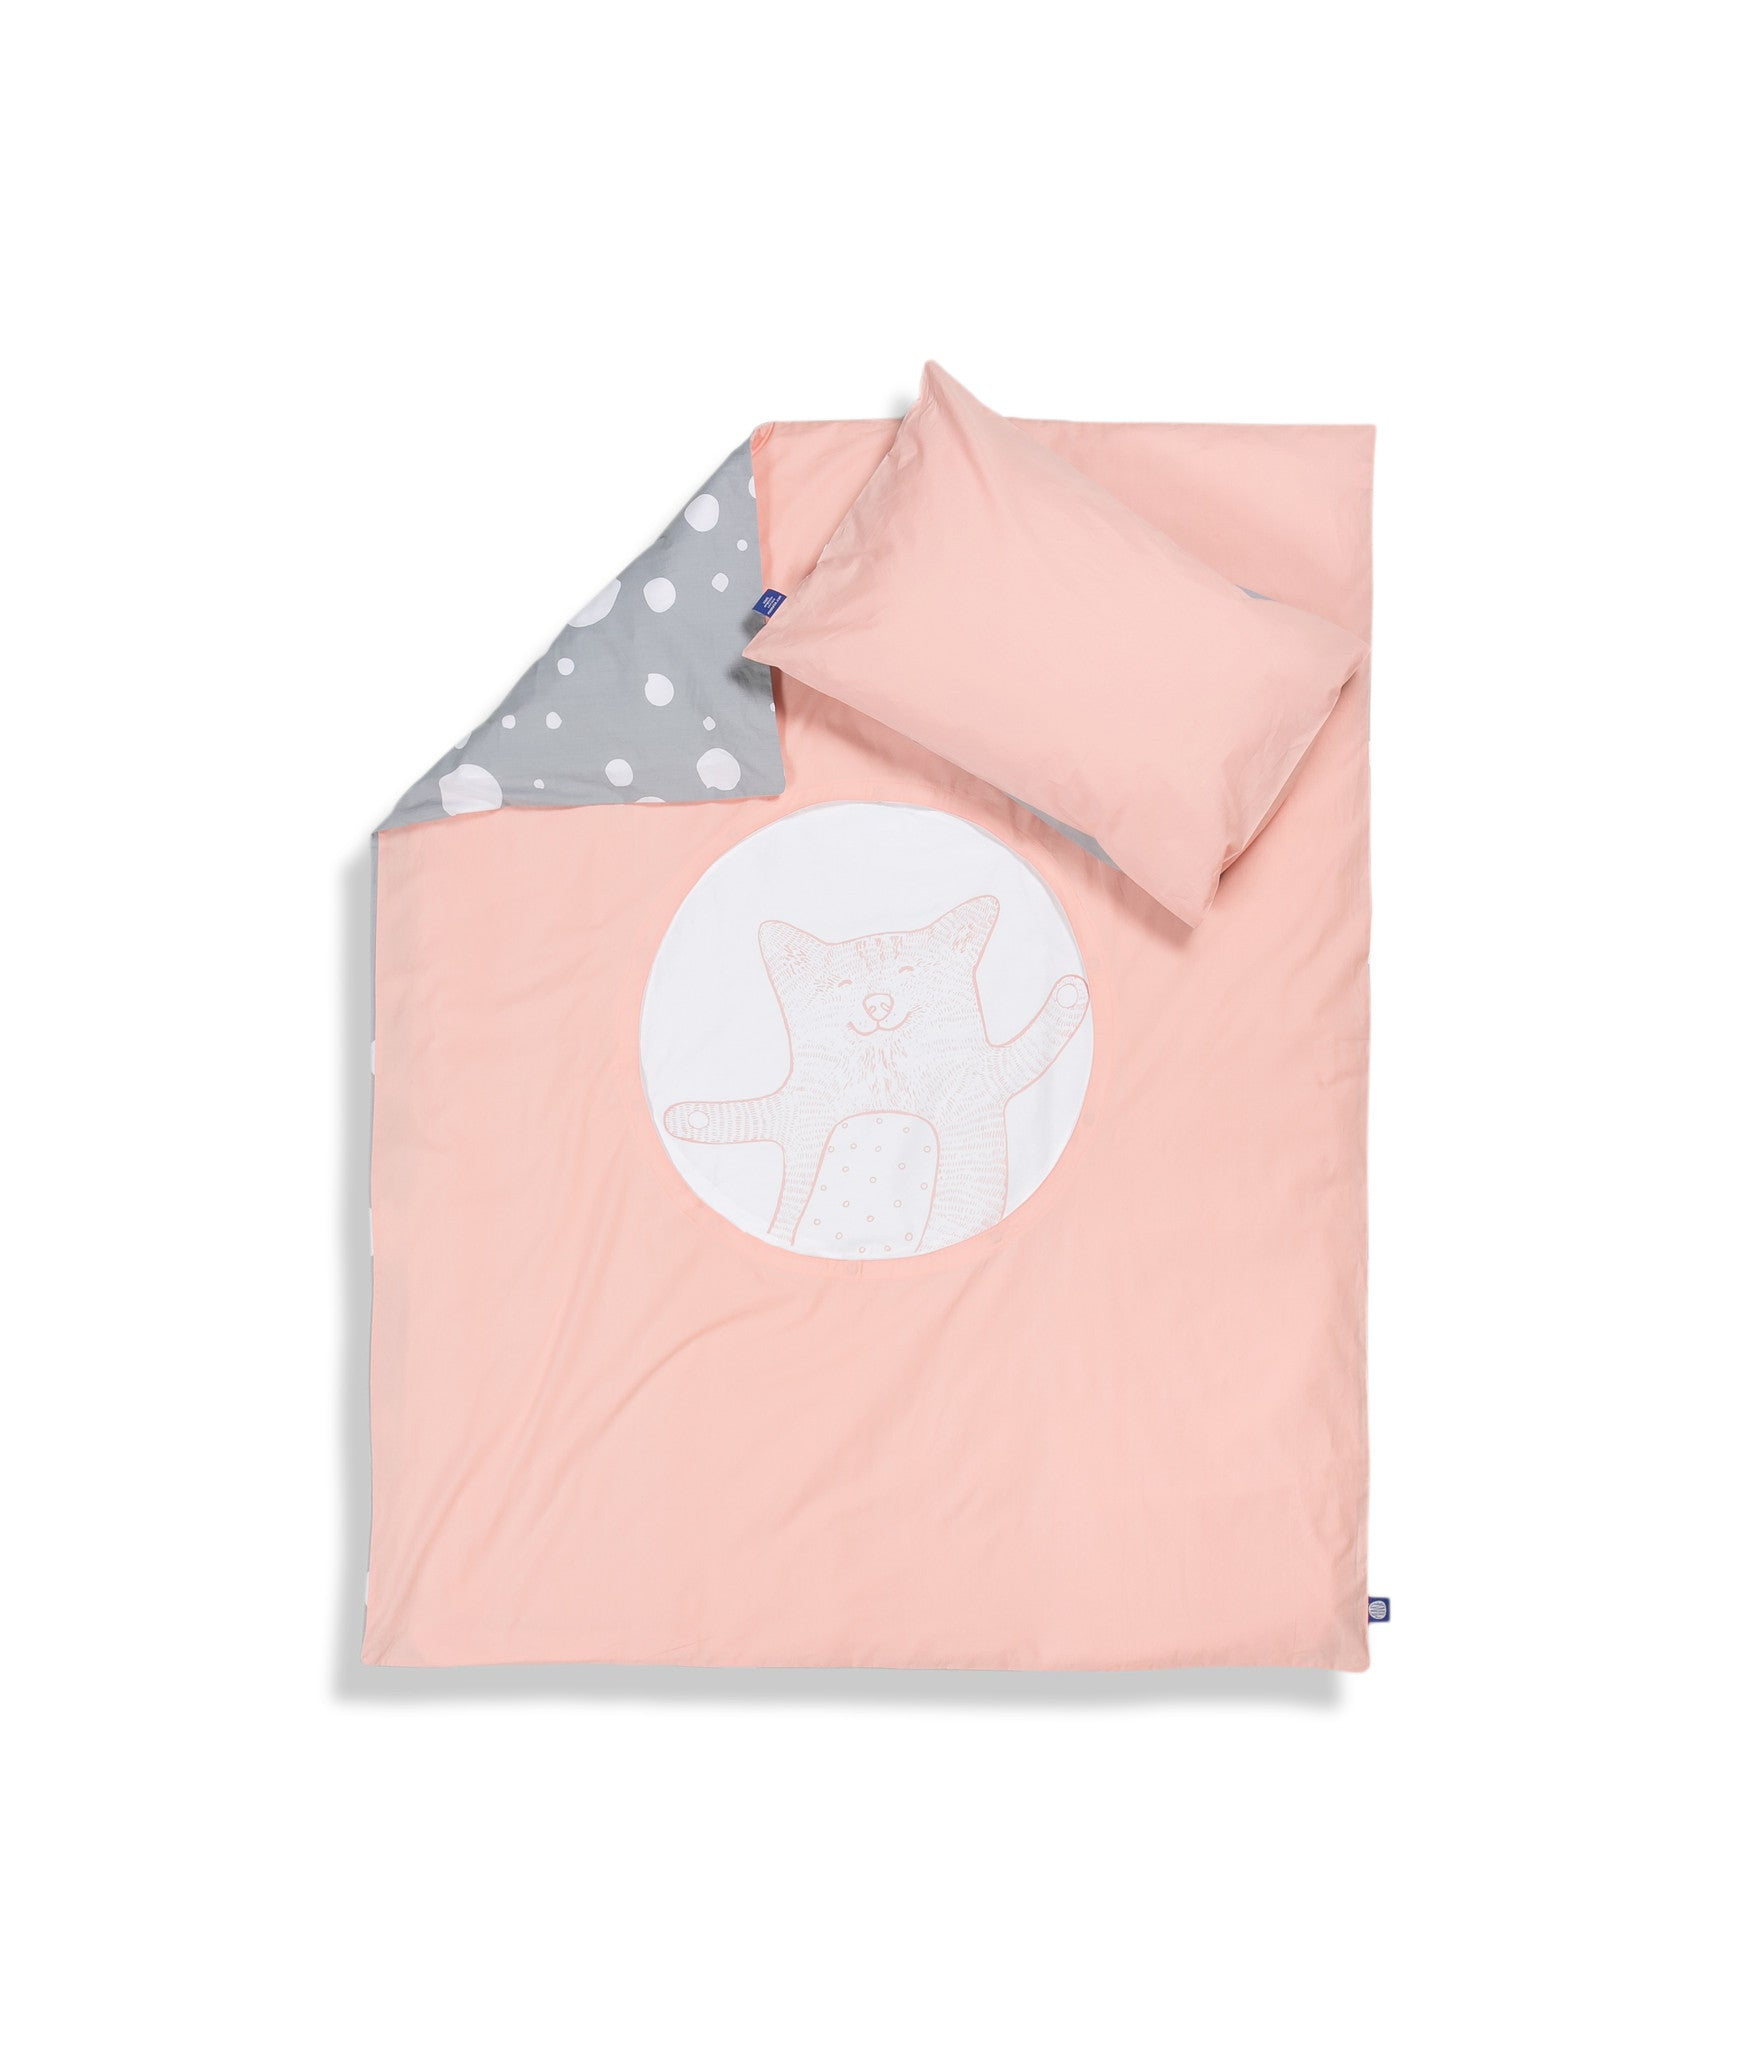 Organic cotton pink cot bed set. Baby bedding. Pink colour. Pillow case and duvet cover. Dotted pattern bed linen. Main character cat Shoo.